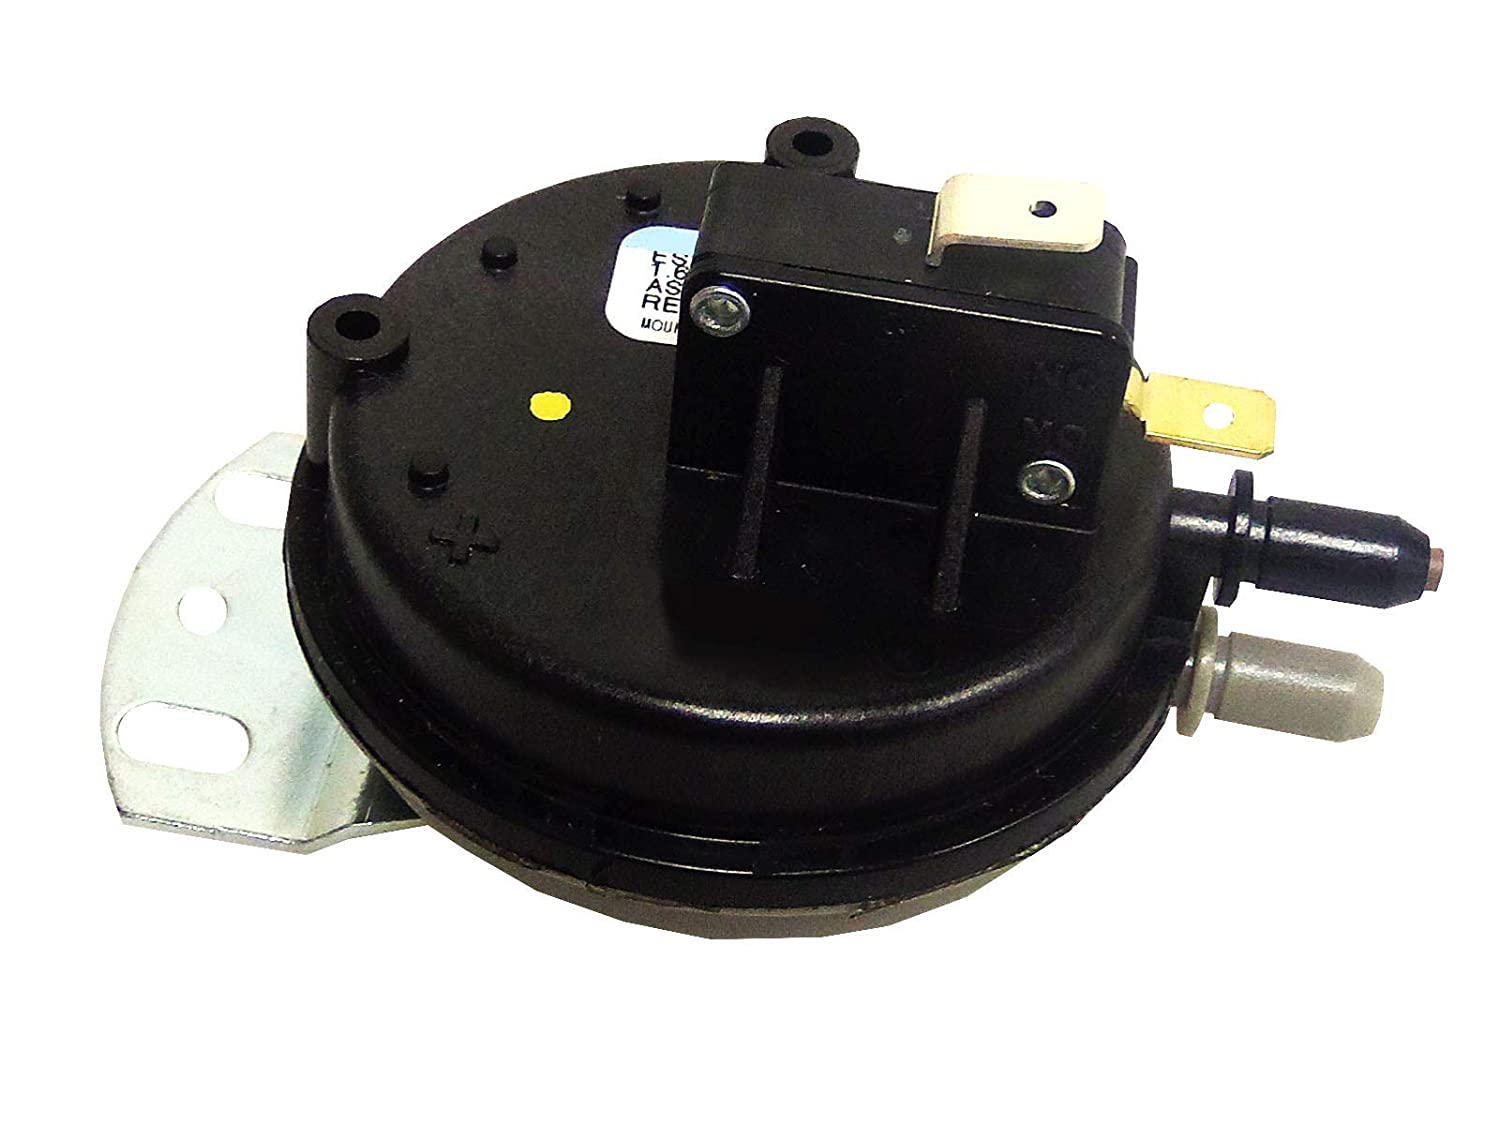 PPS10009-2697 - ClimaTek Replacement for Sears Furnace Vent Air Pressure Switch